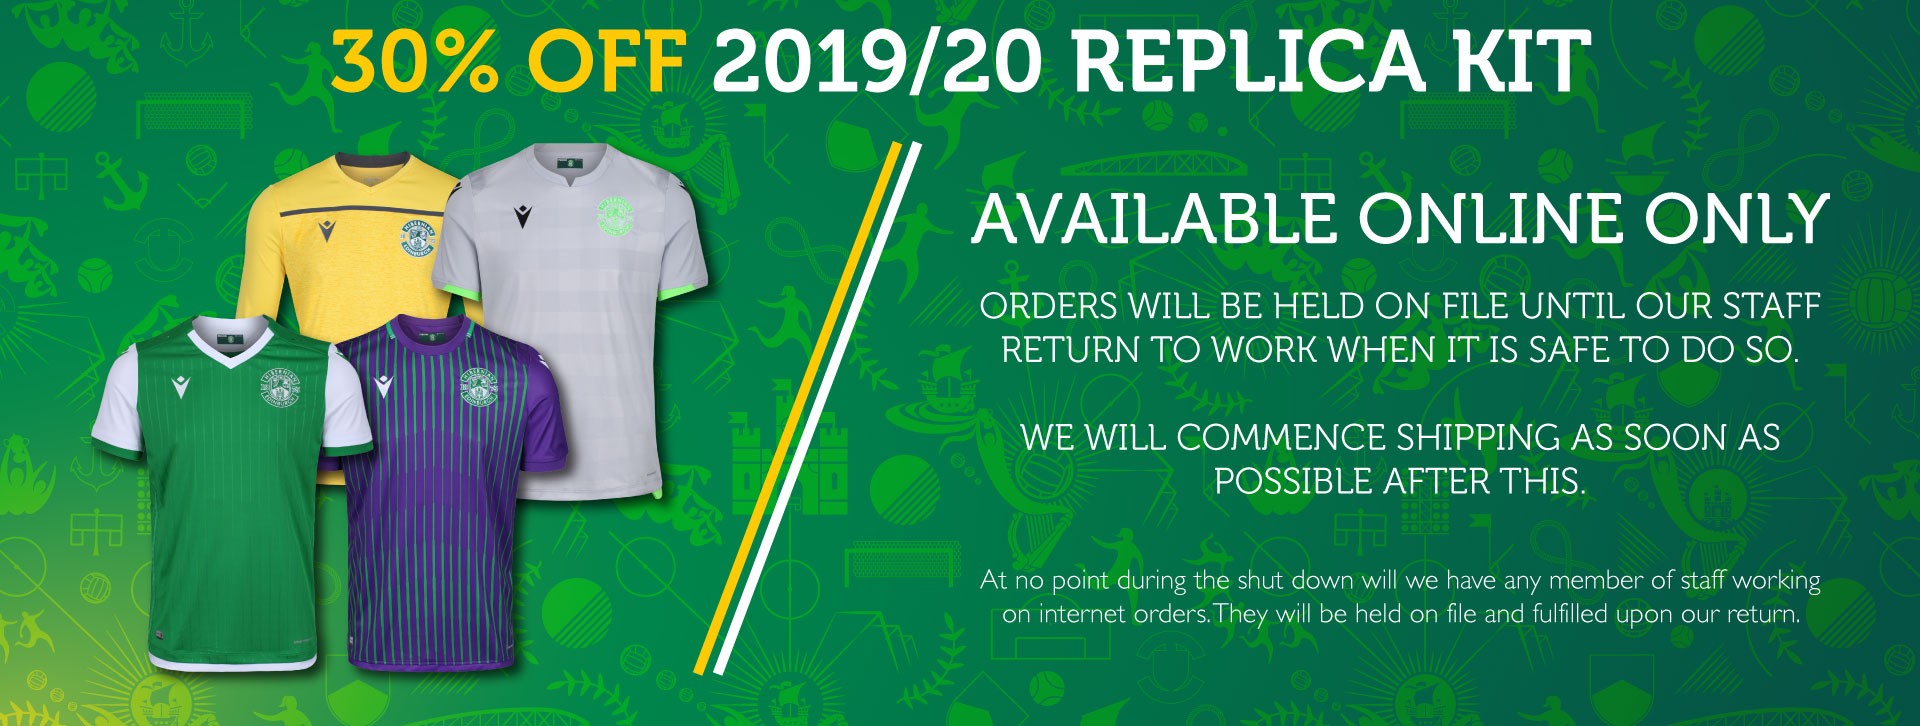 30% OFF 2019/20 REPLICA KIT